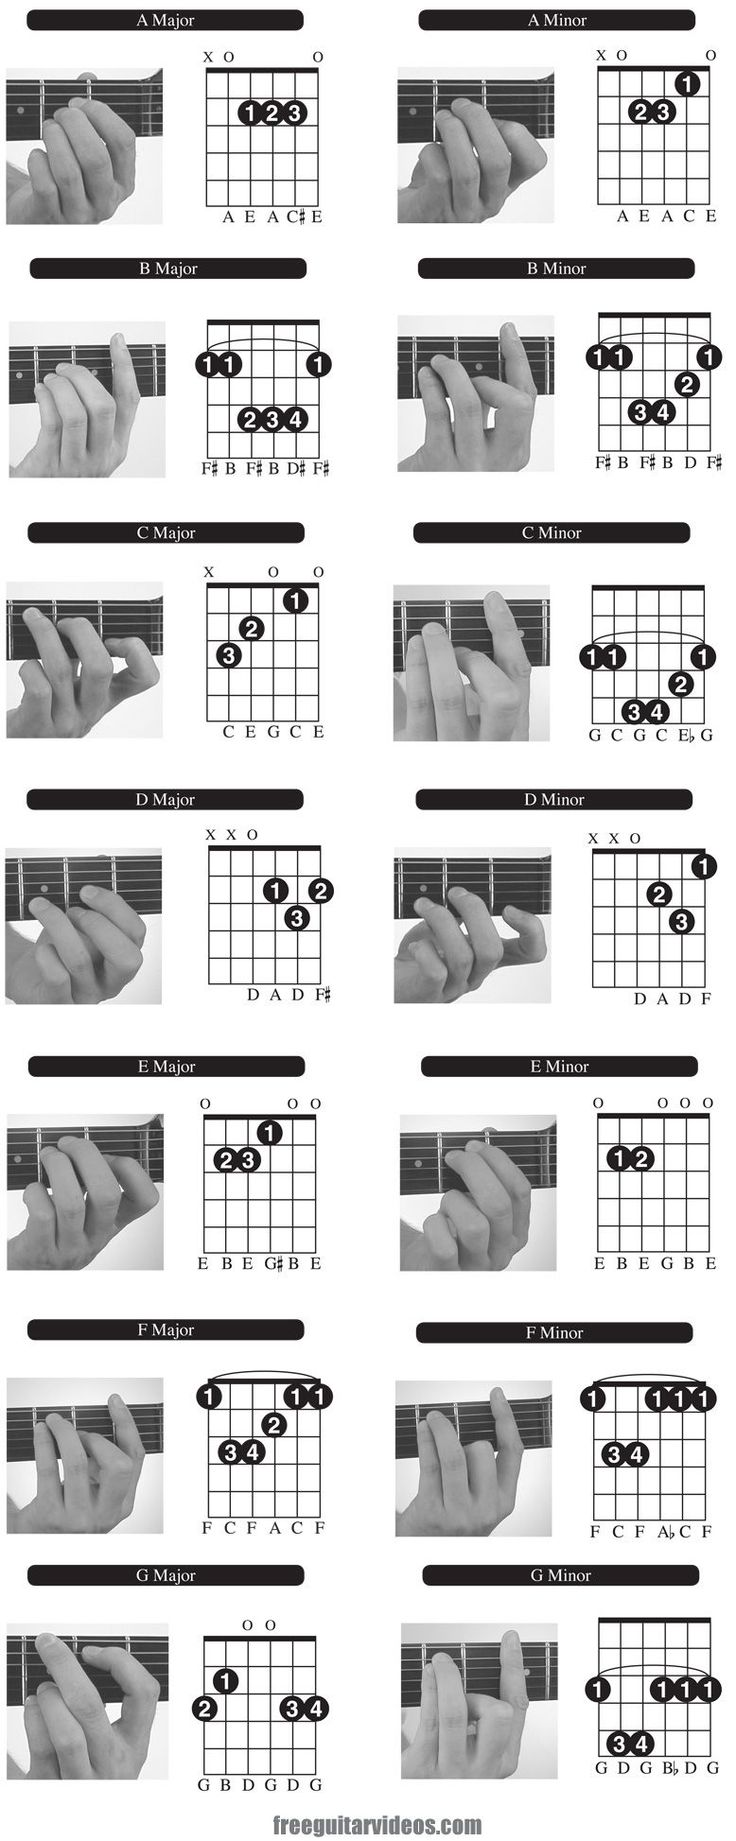 I particularly like this chord chart because it gives the notes on each string. Once you know those, you can start inverting and building chords yourself